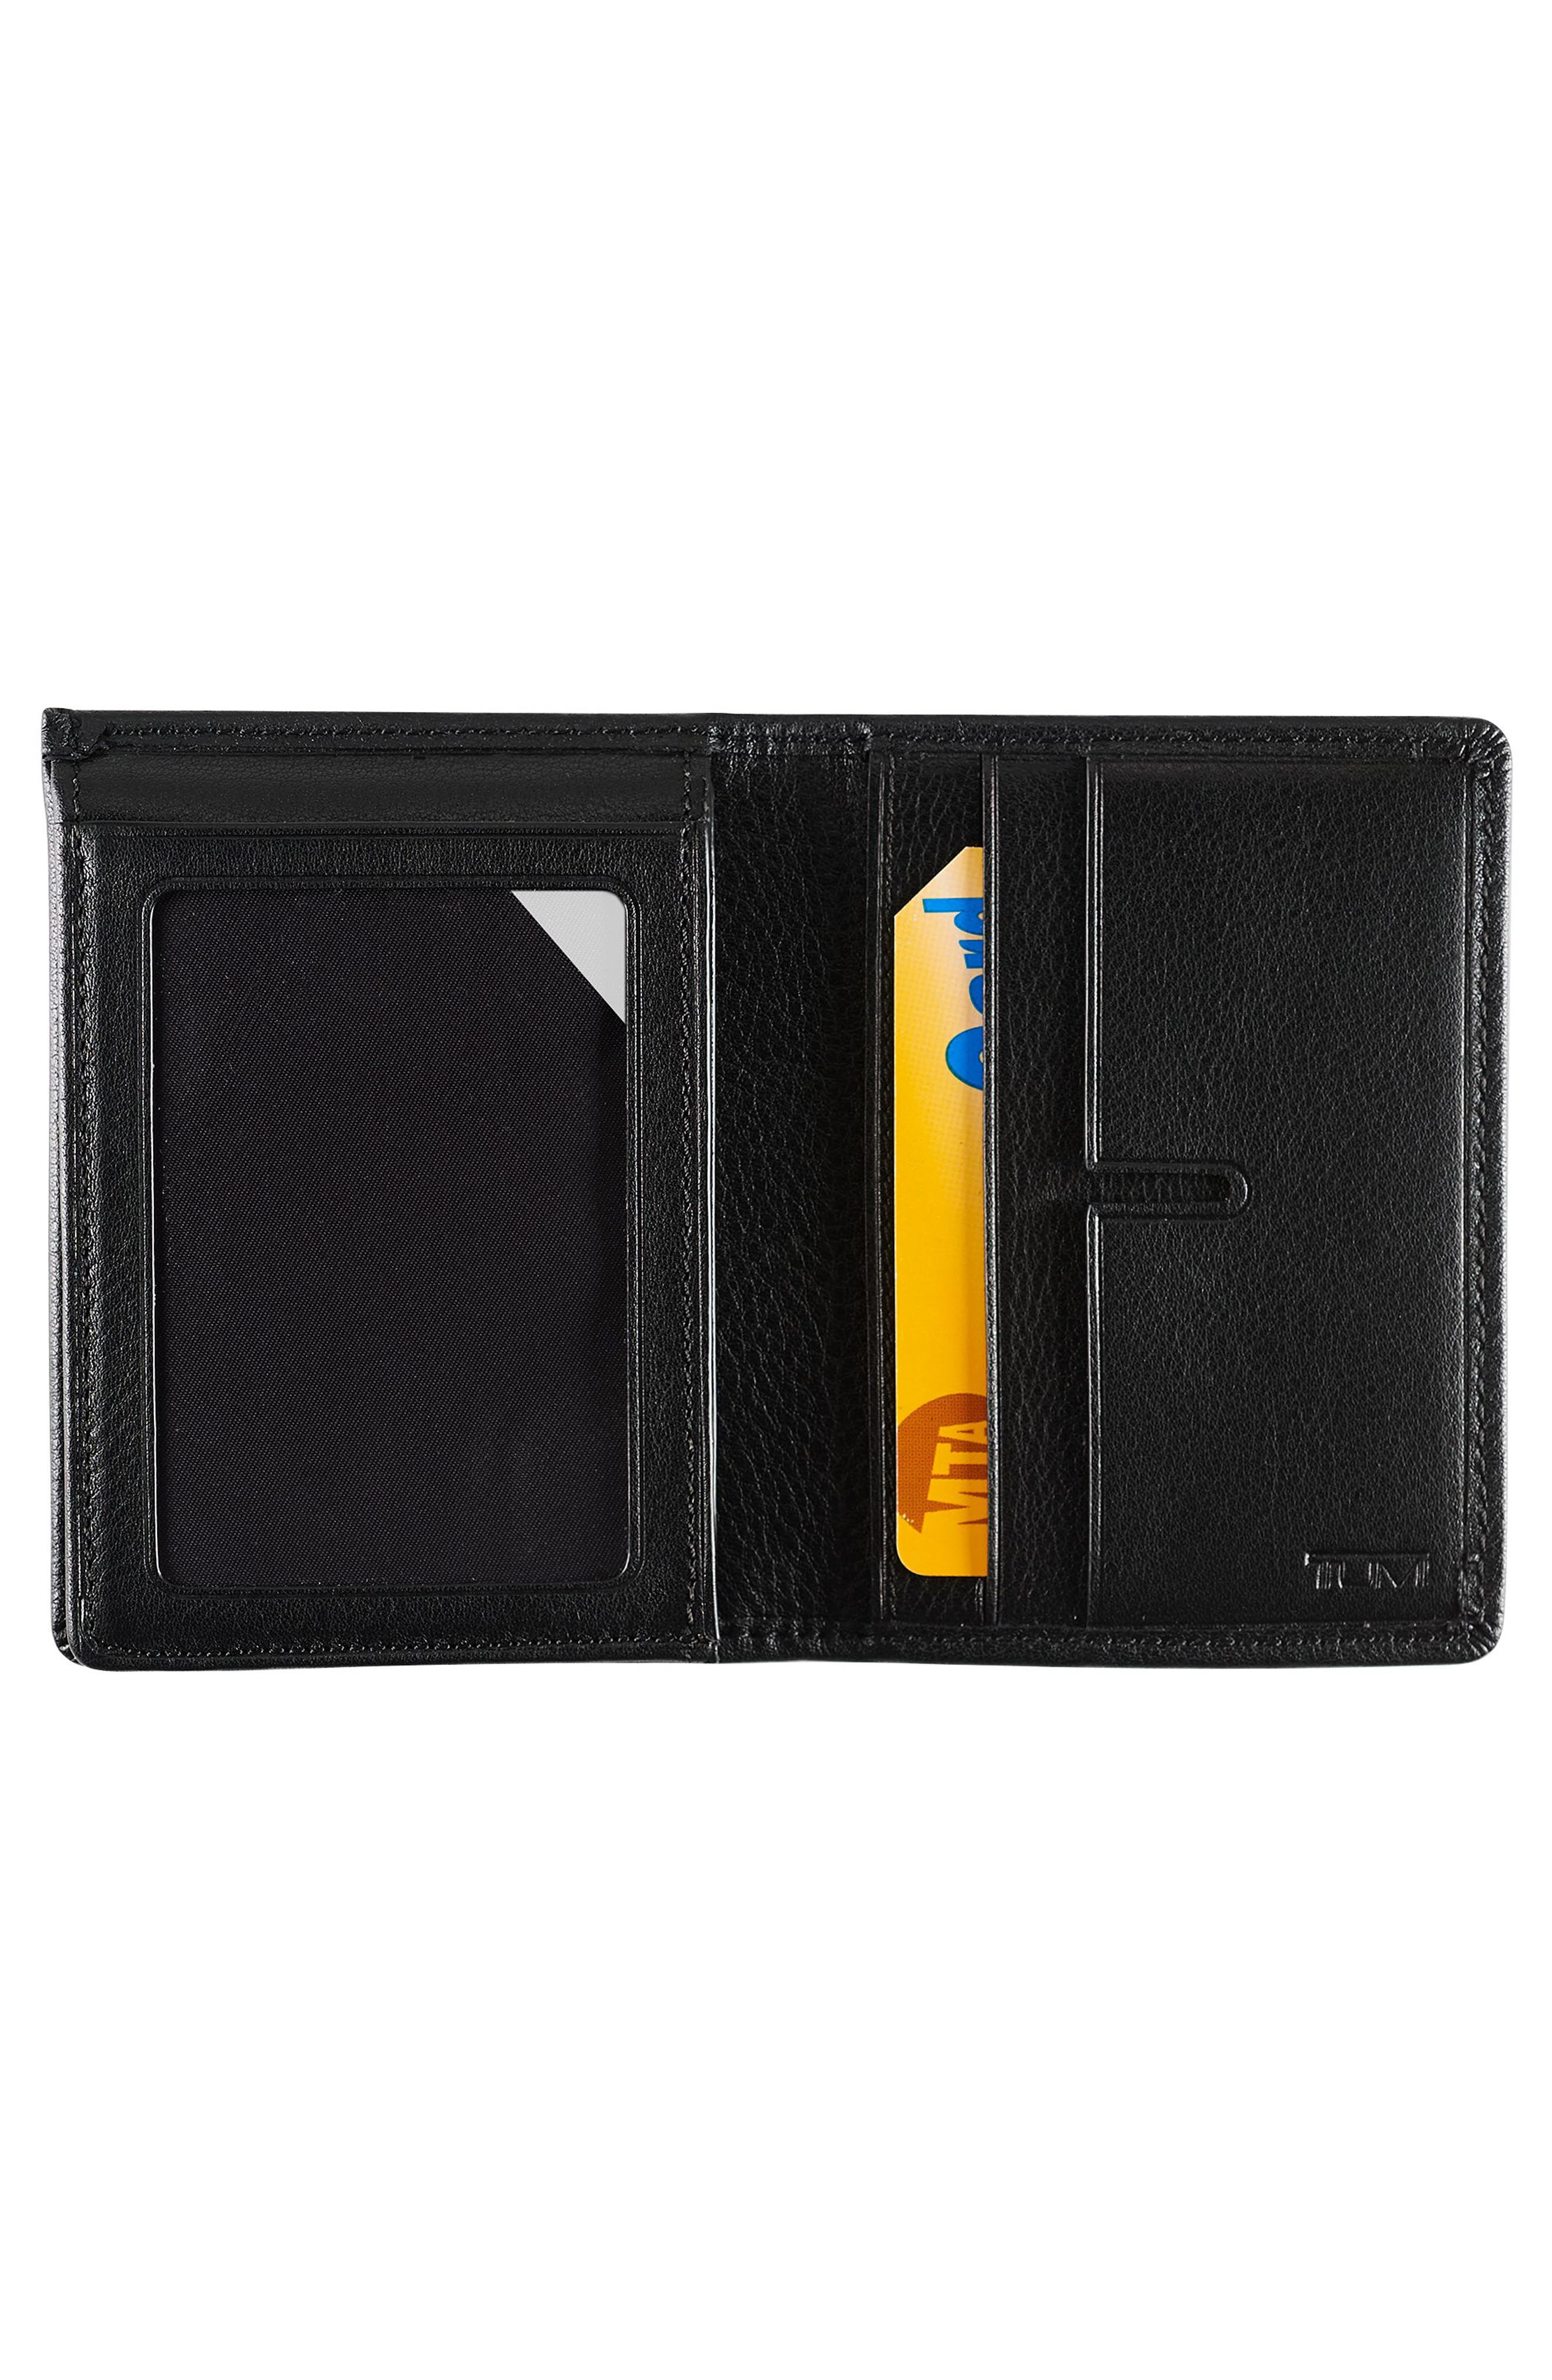 Leather L-Fold Wallet,                             Alternate thumbnail 2, color,                             Black Textured